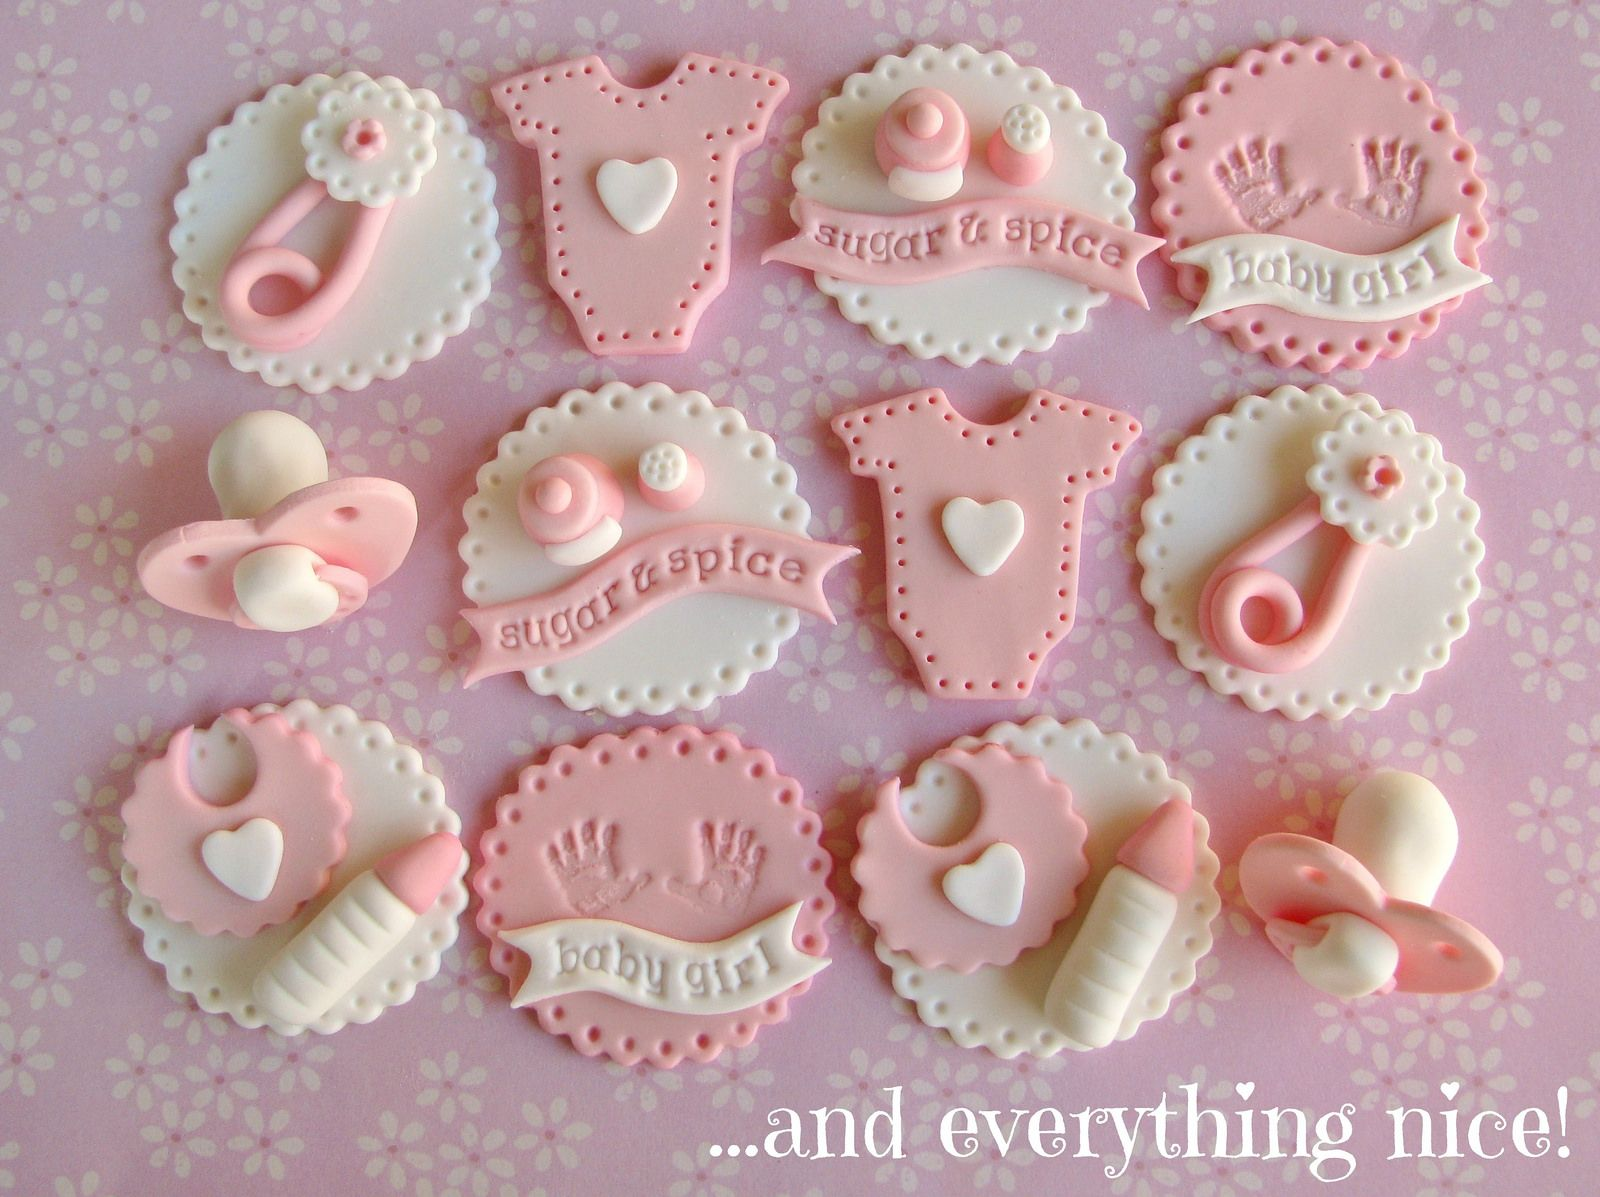 sugar spice baby shower cupcake toppers flickr photo sharing